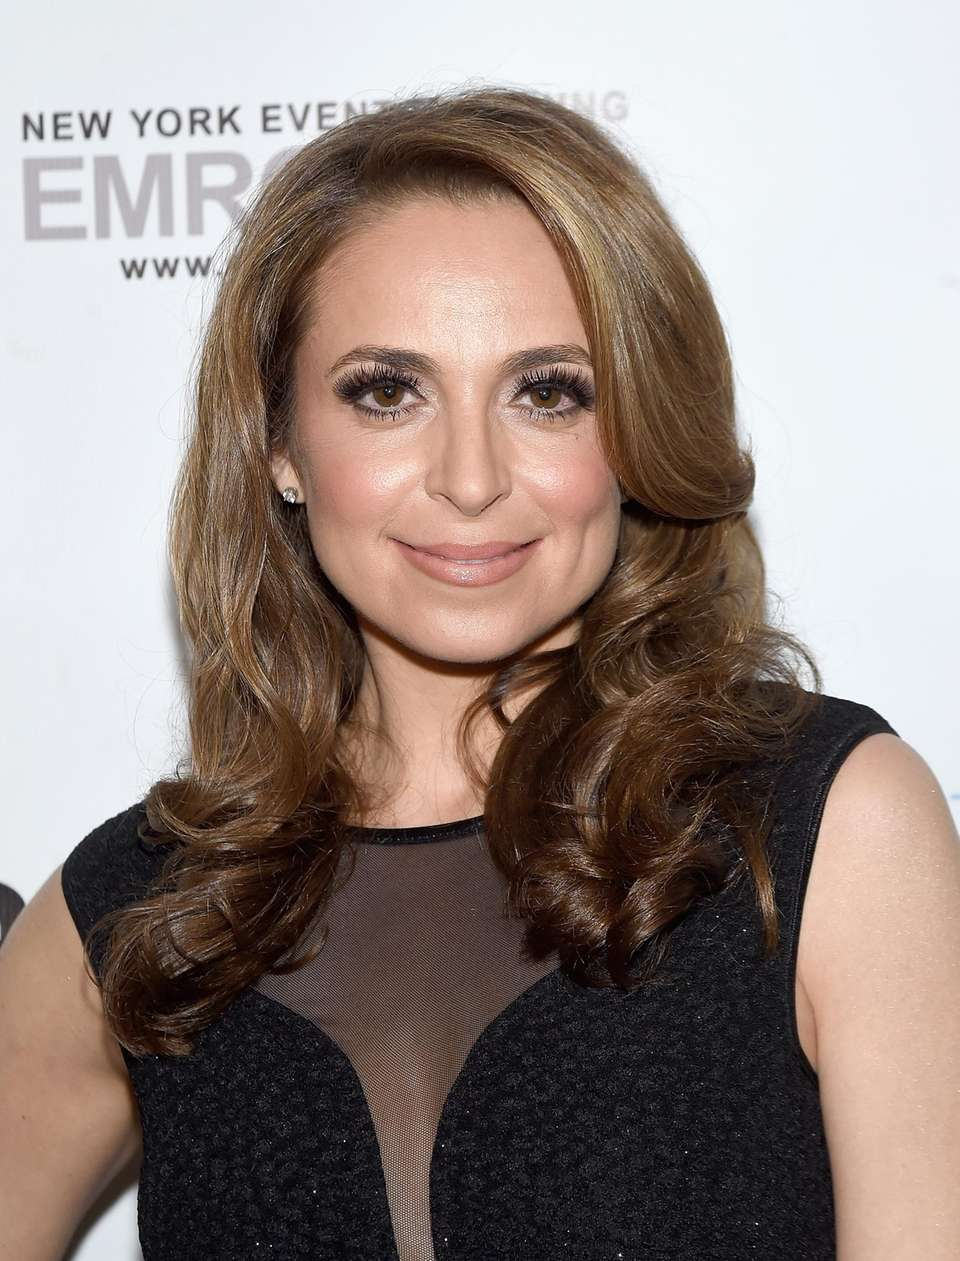 Conservative political commentator Jedediah Bila joined